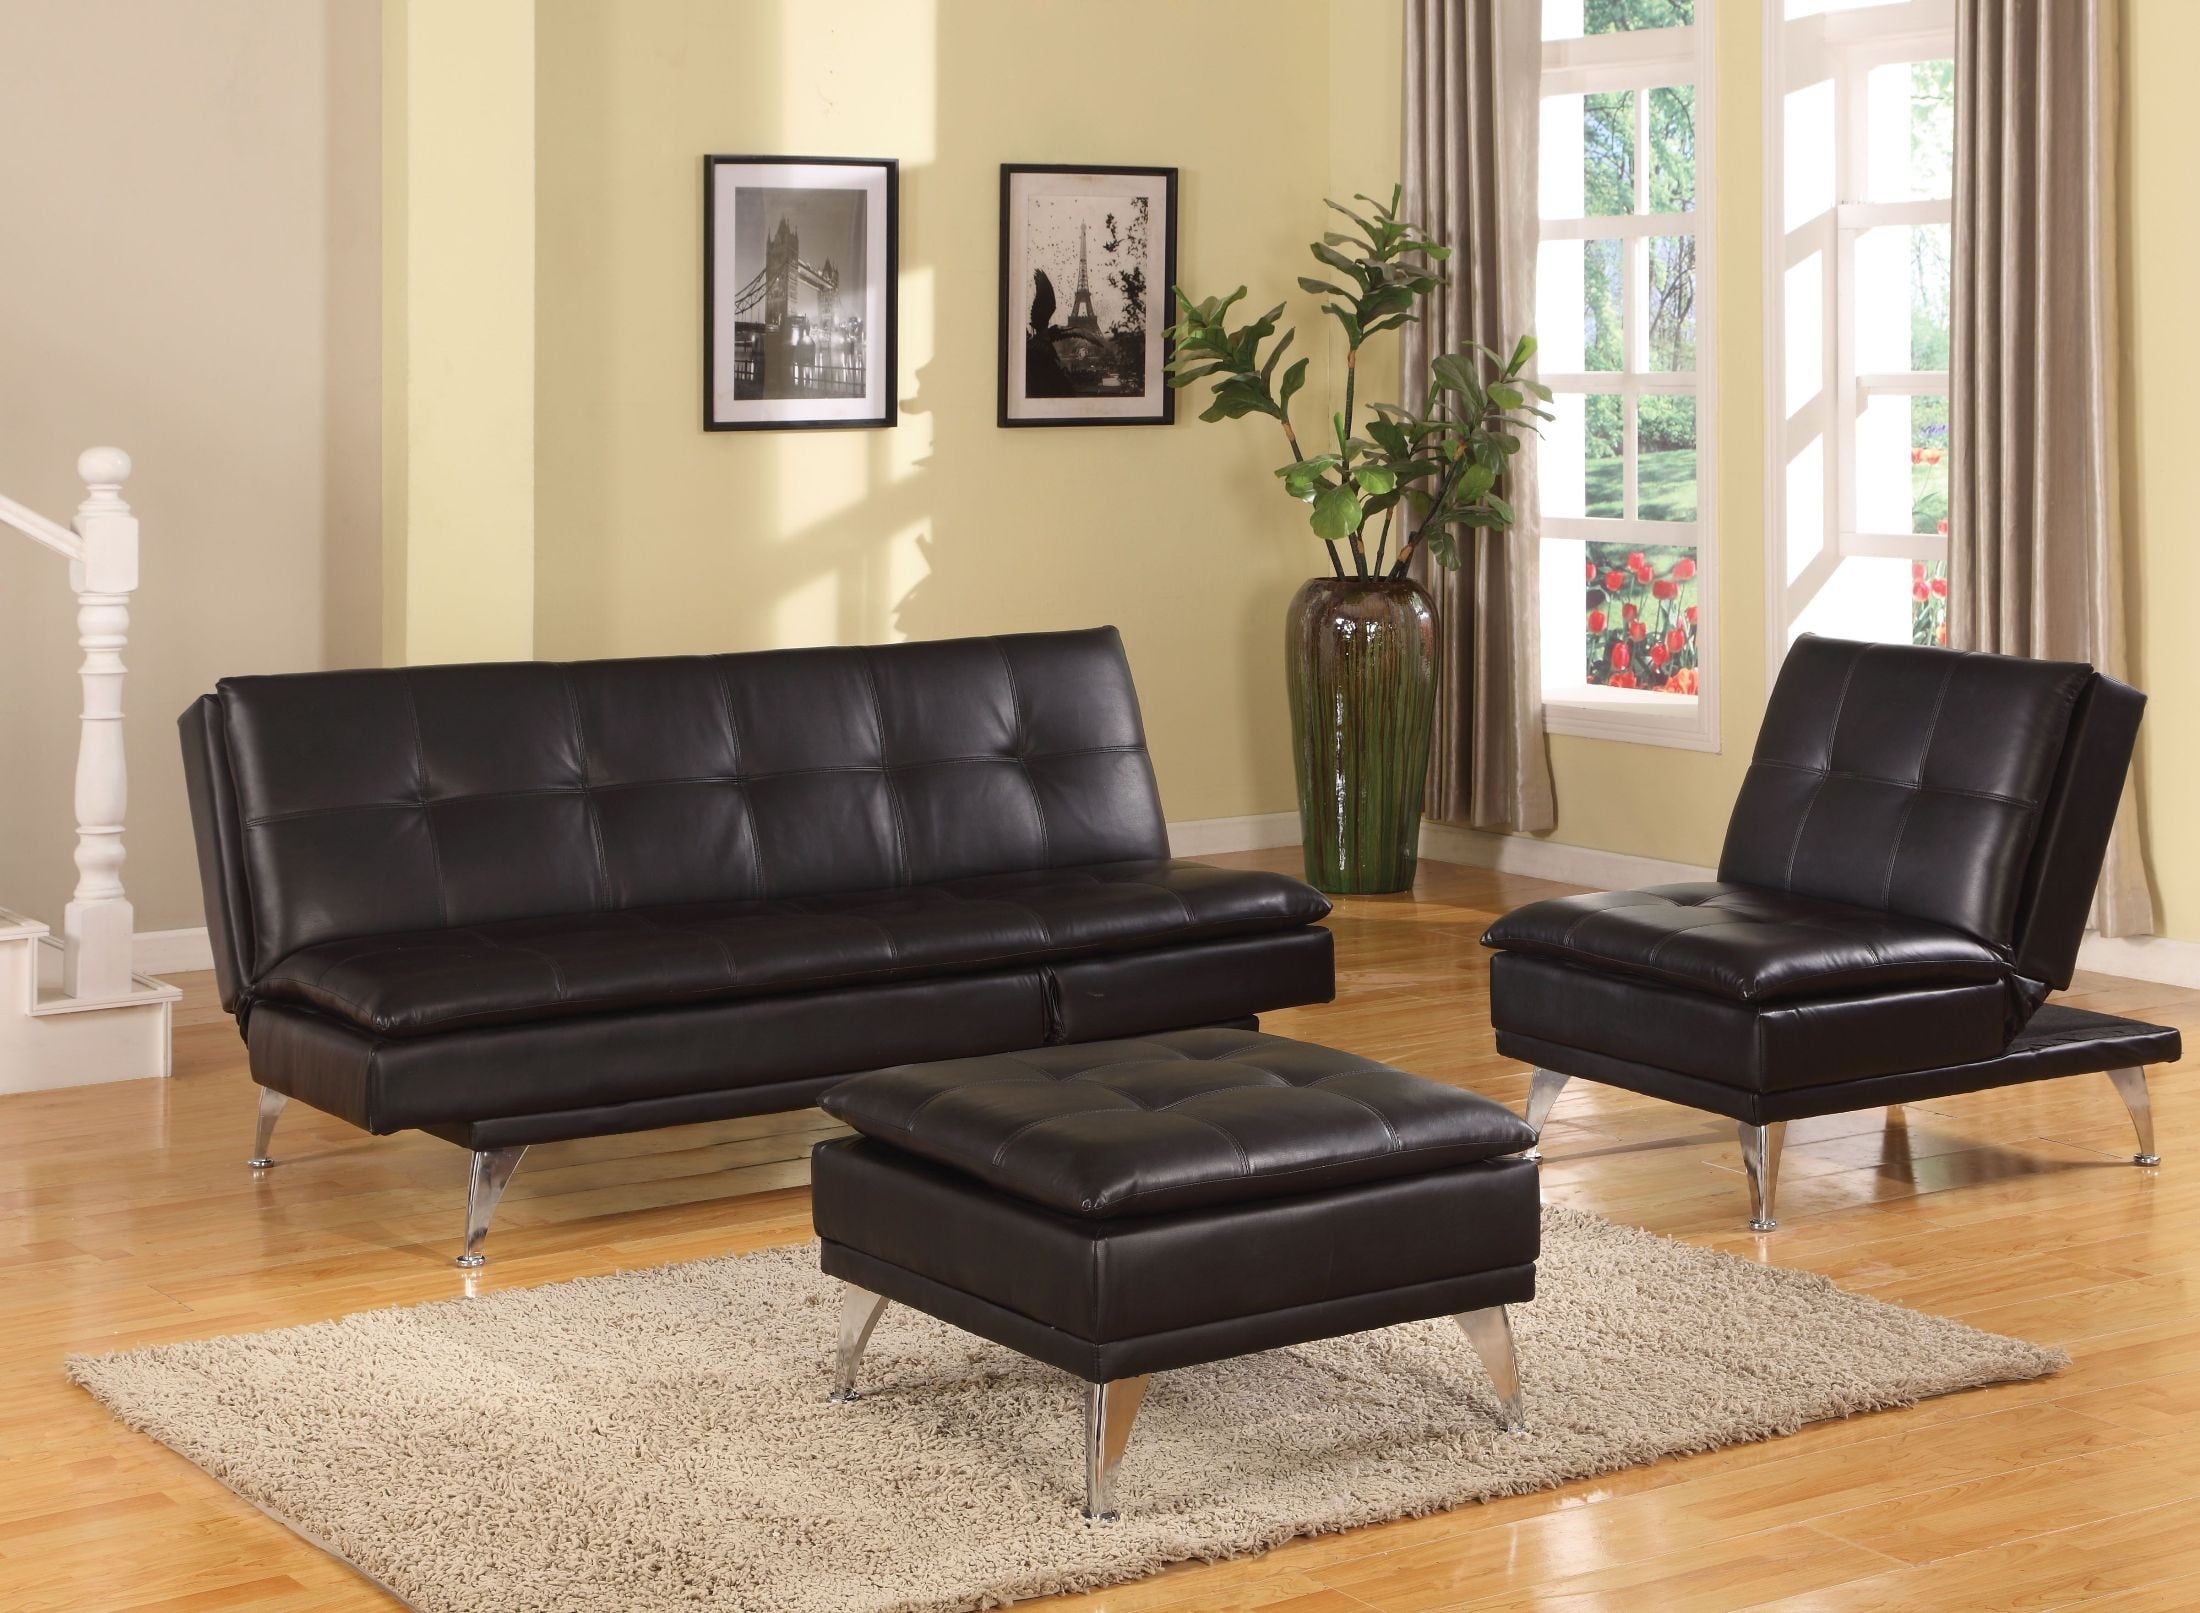 Frasier Black Adjustable Futon Living Room Set from Acme | Coleman ...